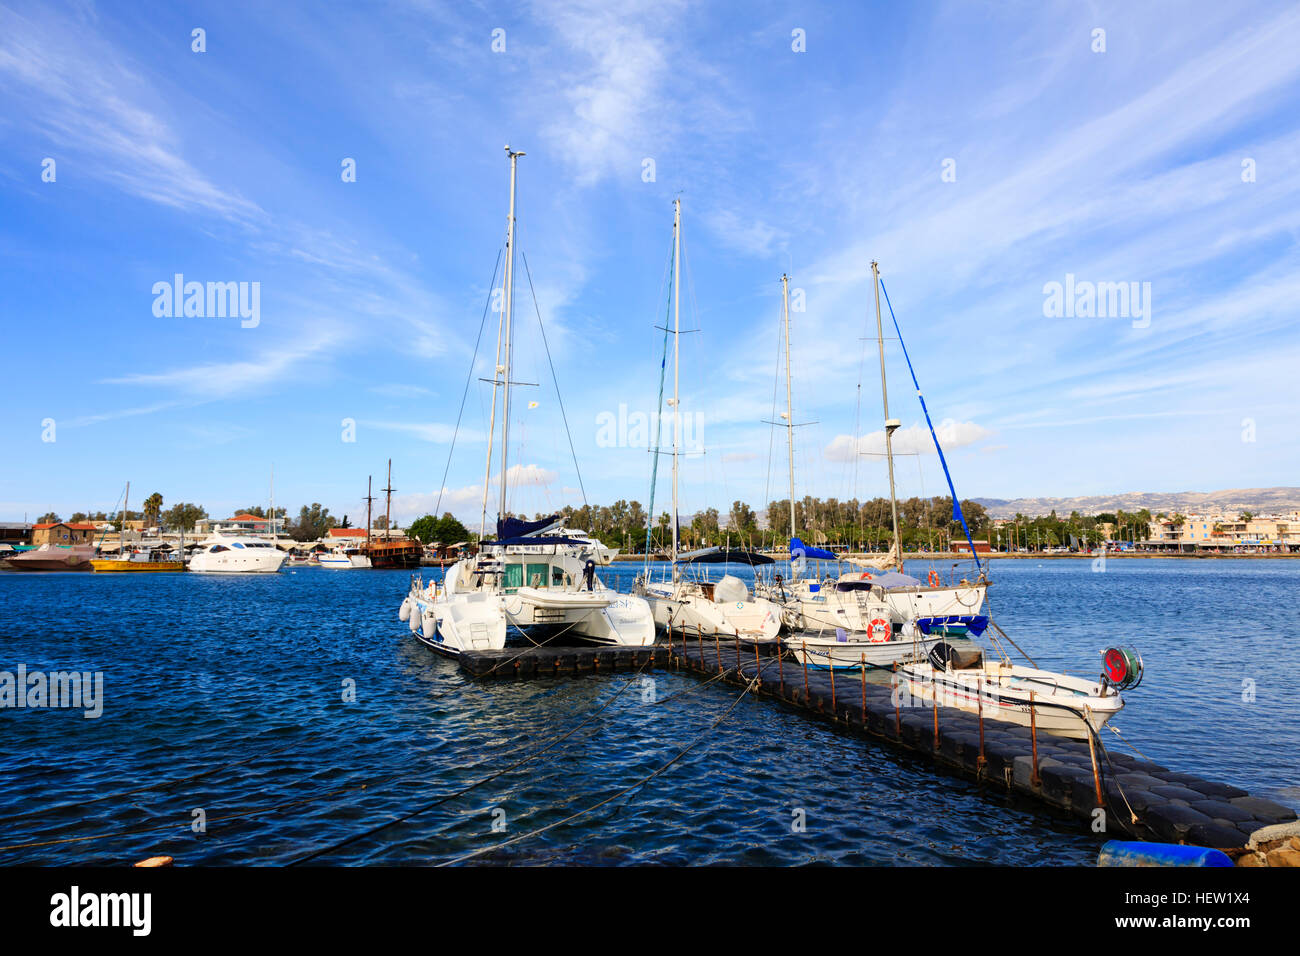 Boats in Paphos harbour, Cyprus - Stock Image